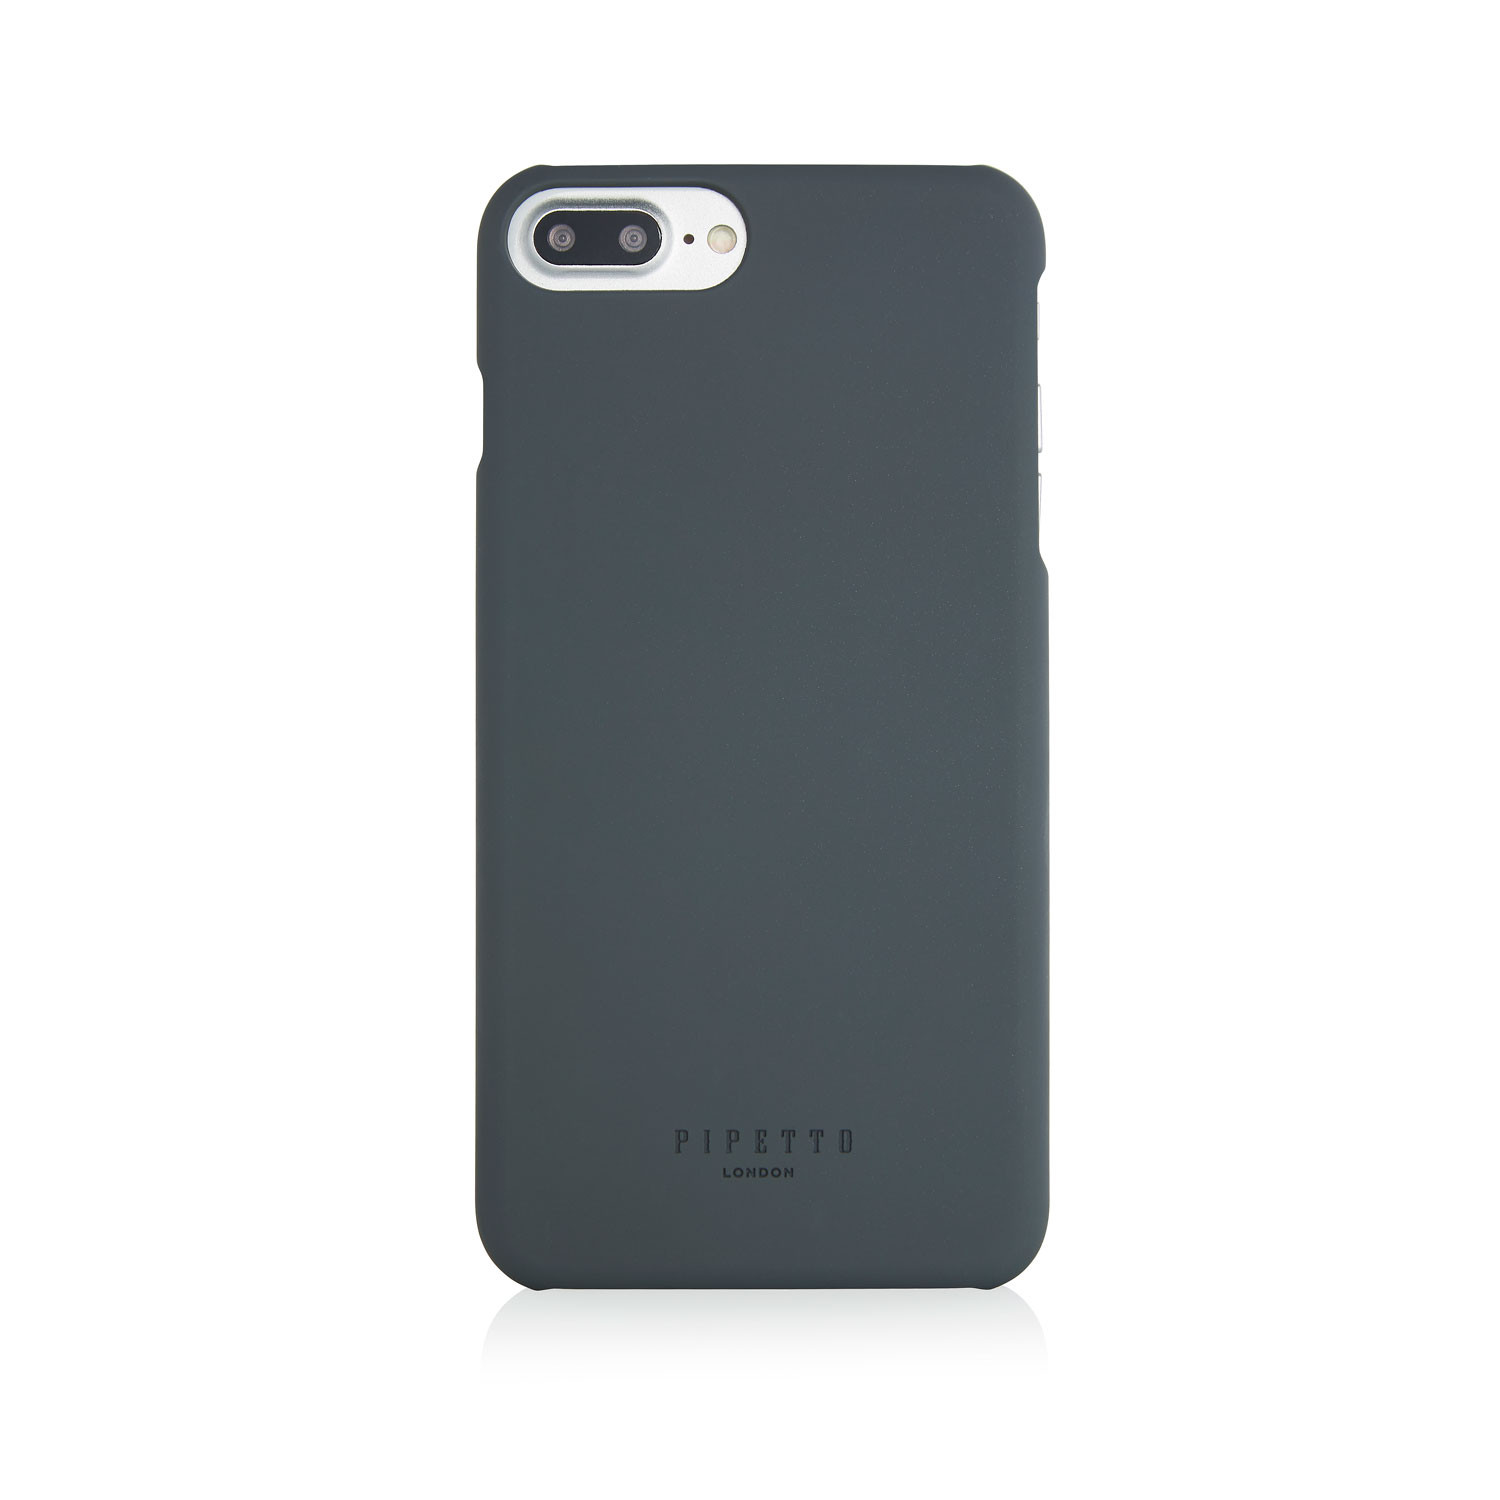 online store 689e6 f81d5 iPhone 7 Plus Case Magnetic Shell - Grey (Also Fits iPhone 6/6S Plus)